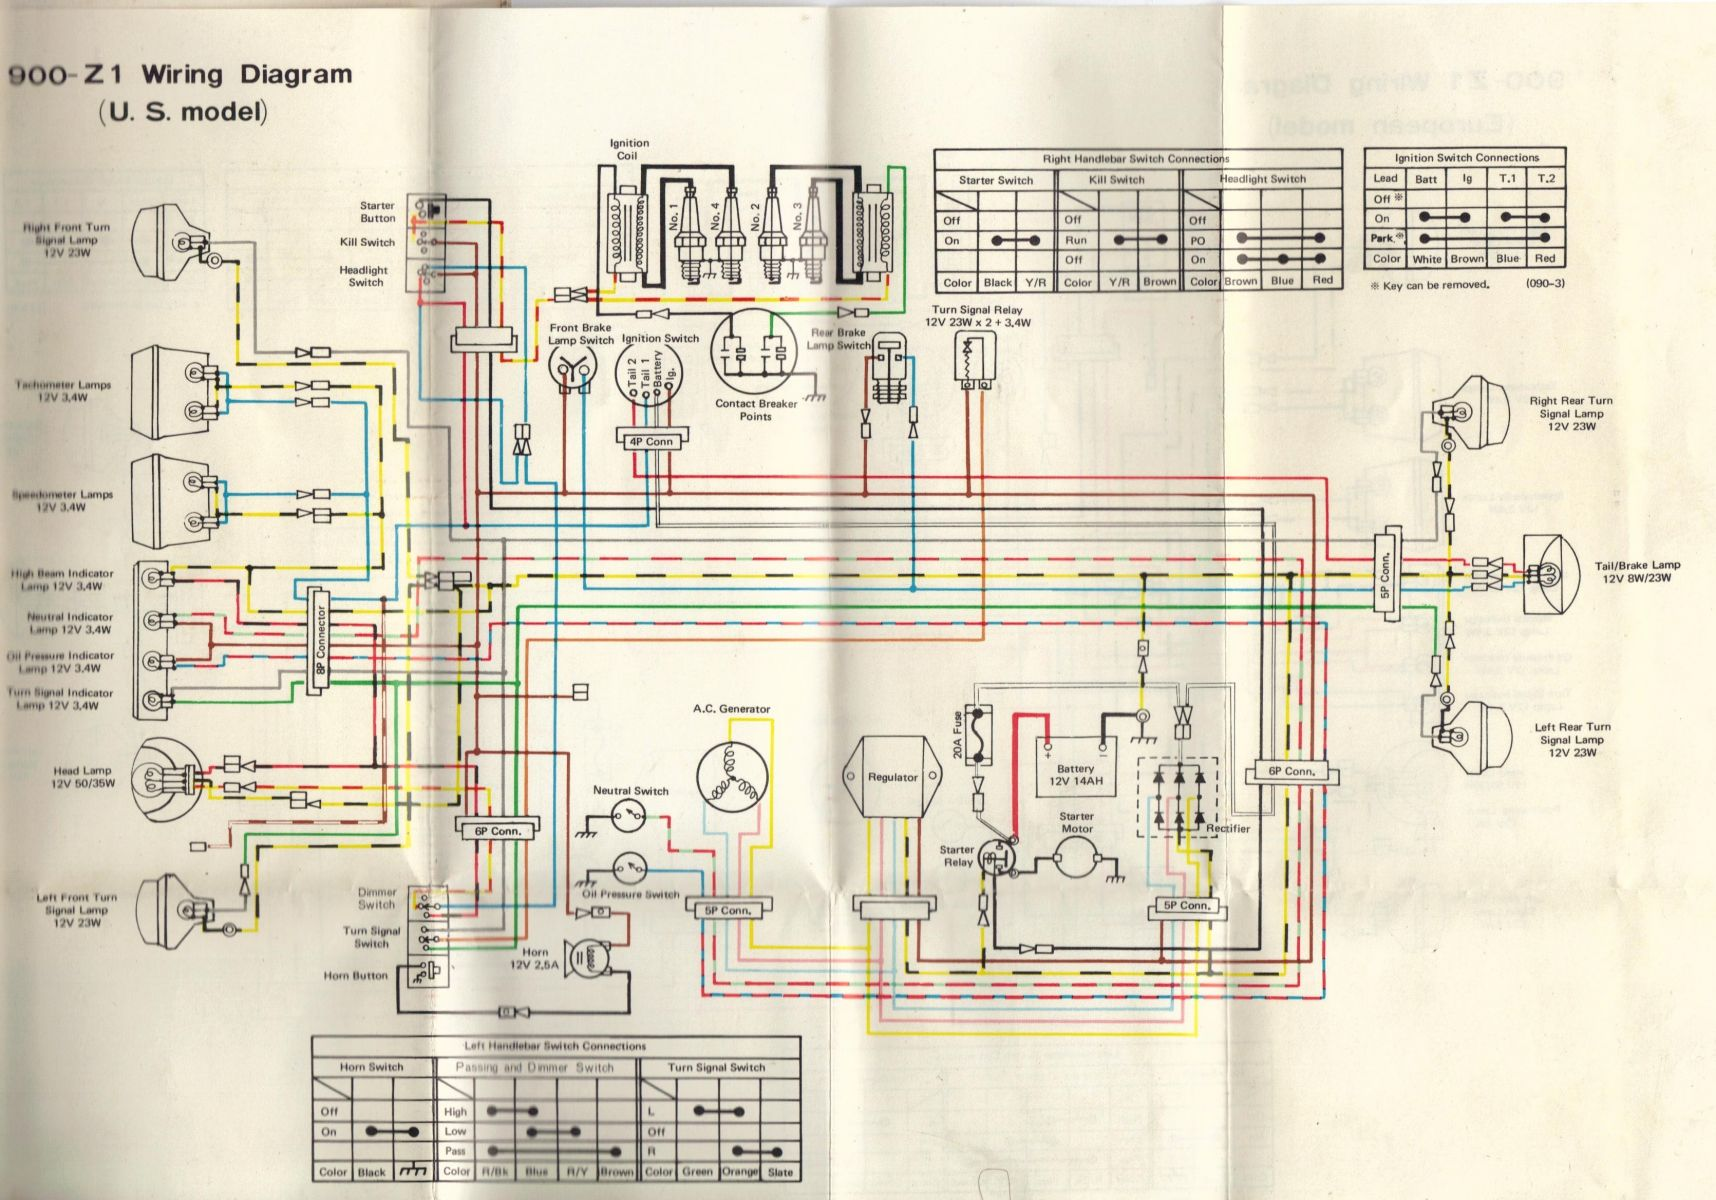 hight resolution of 1973 z1 900 wiring diagram wiring diagram data schemakawasaki 900 wiring diagram online wiring diagram 1973